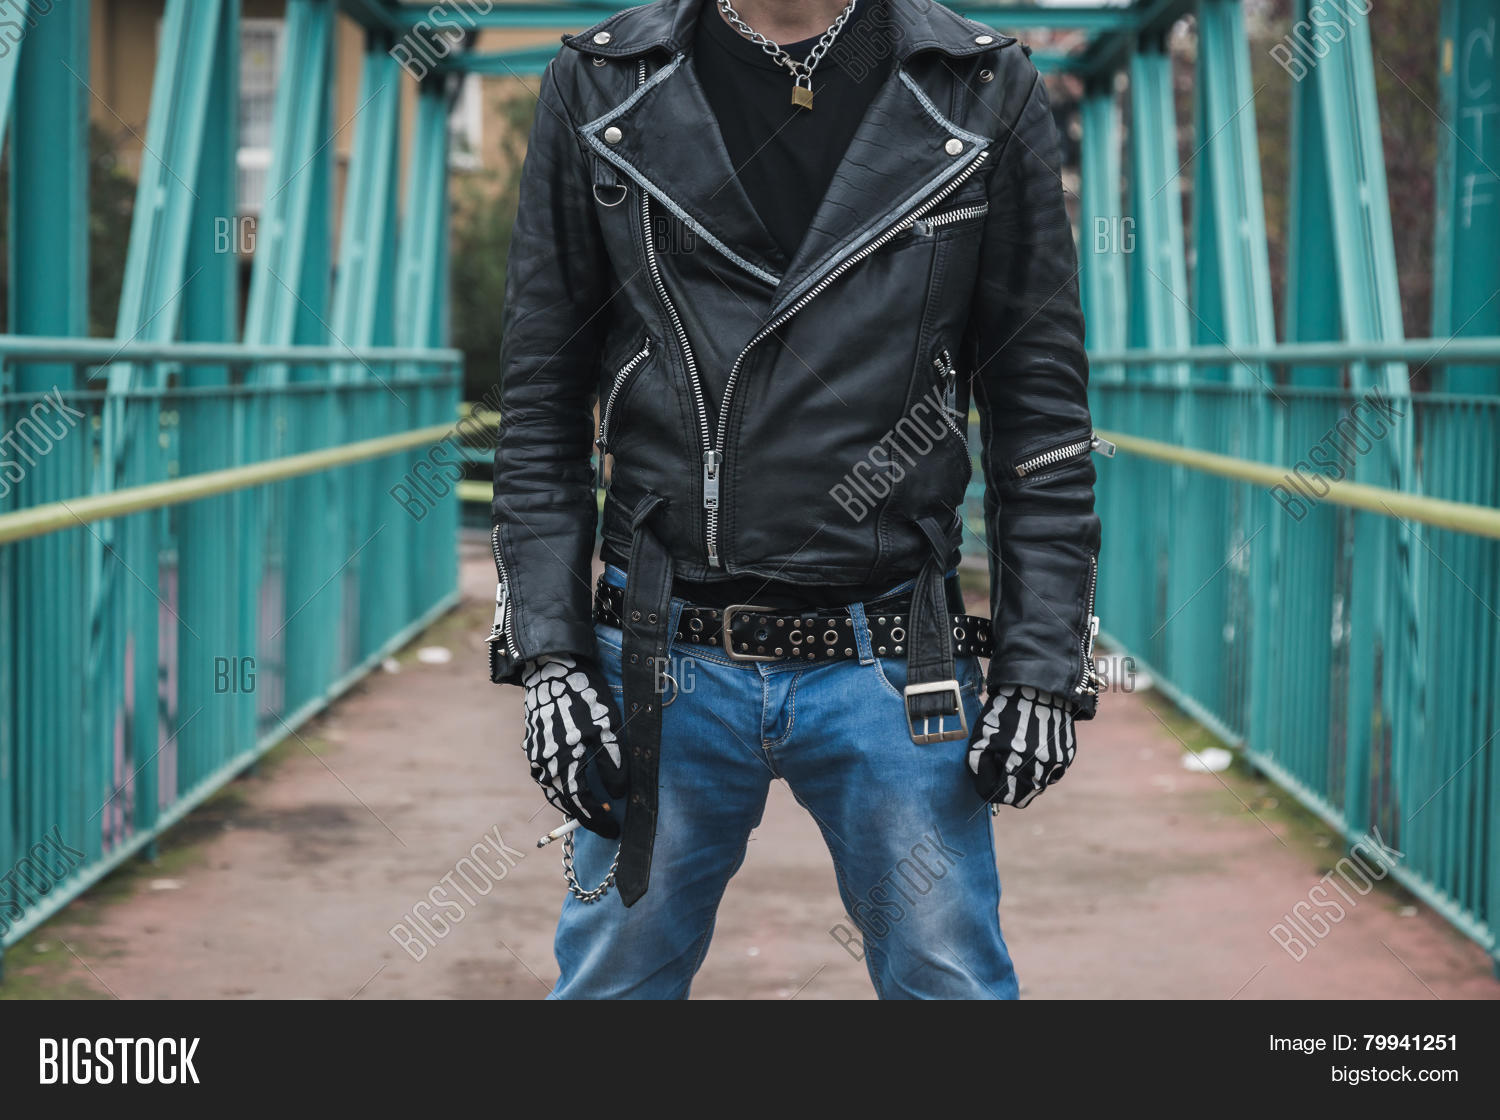 a8cee1d8143 Punk guy posing city image photo free trial bigstock jpg 1500x1120 Punk guy